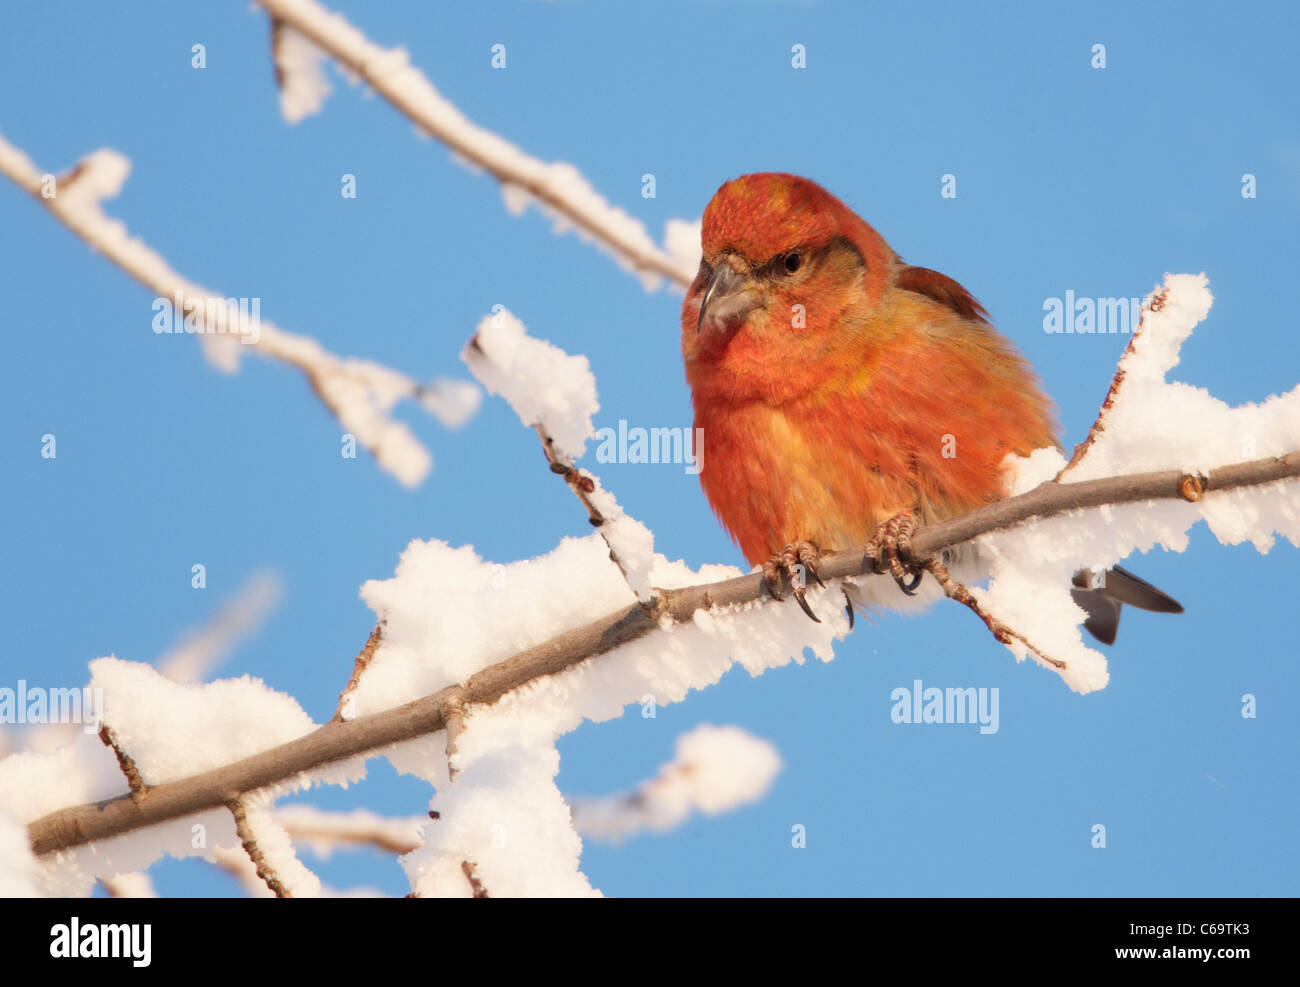 Common Crossbill, Red Crossbill (Loxia curvirostra). Male perched on a snowy twig. - Stock Image